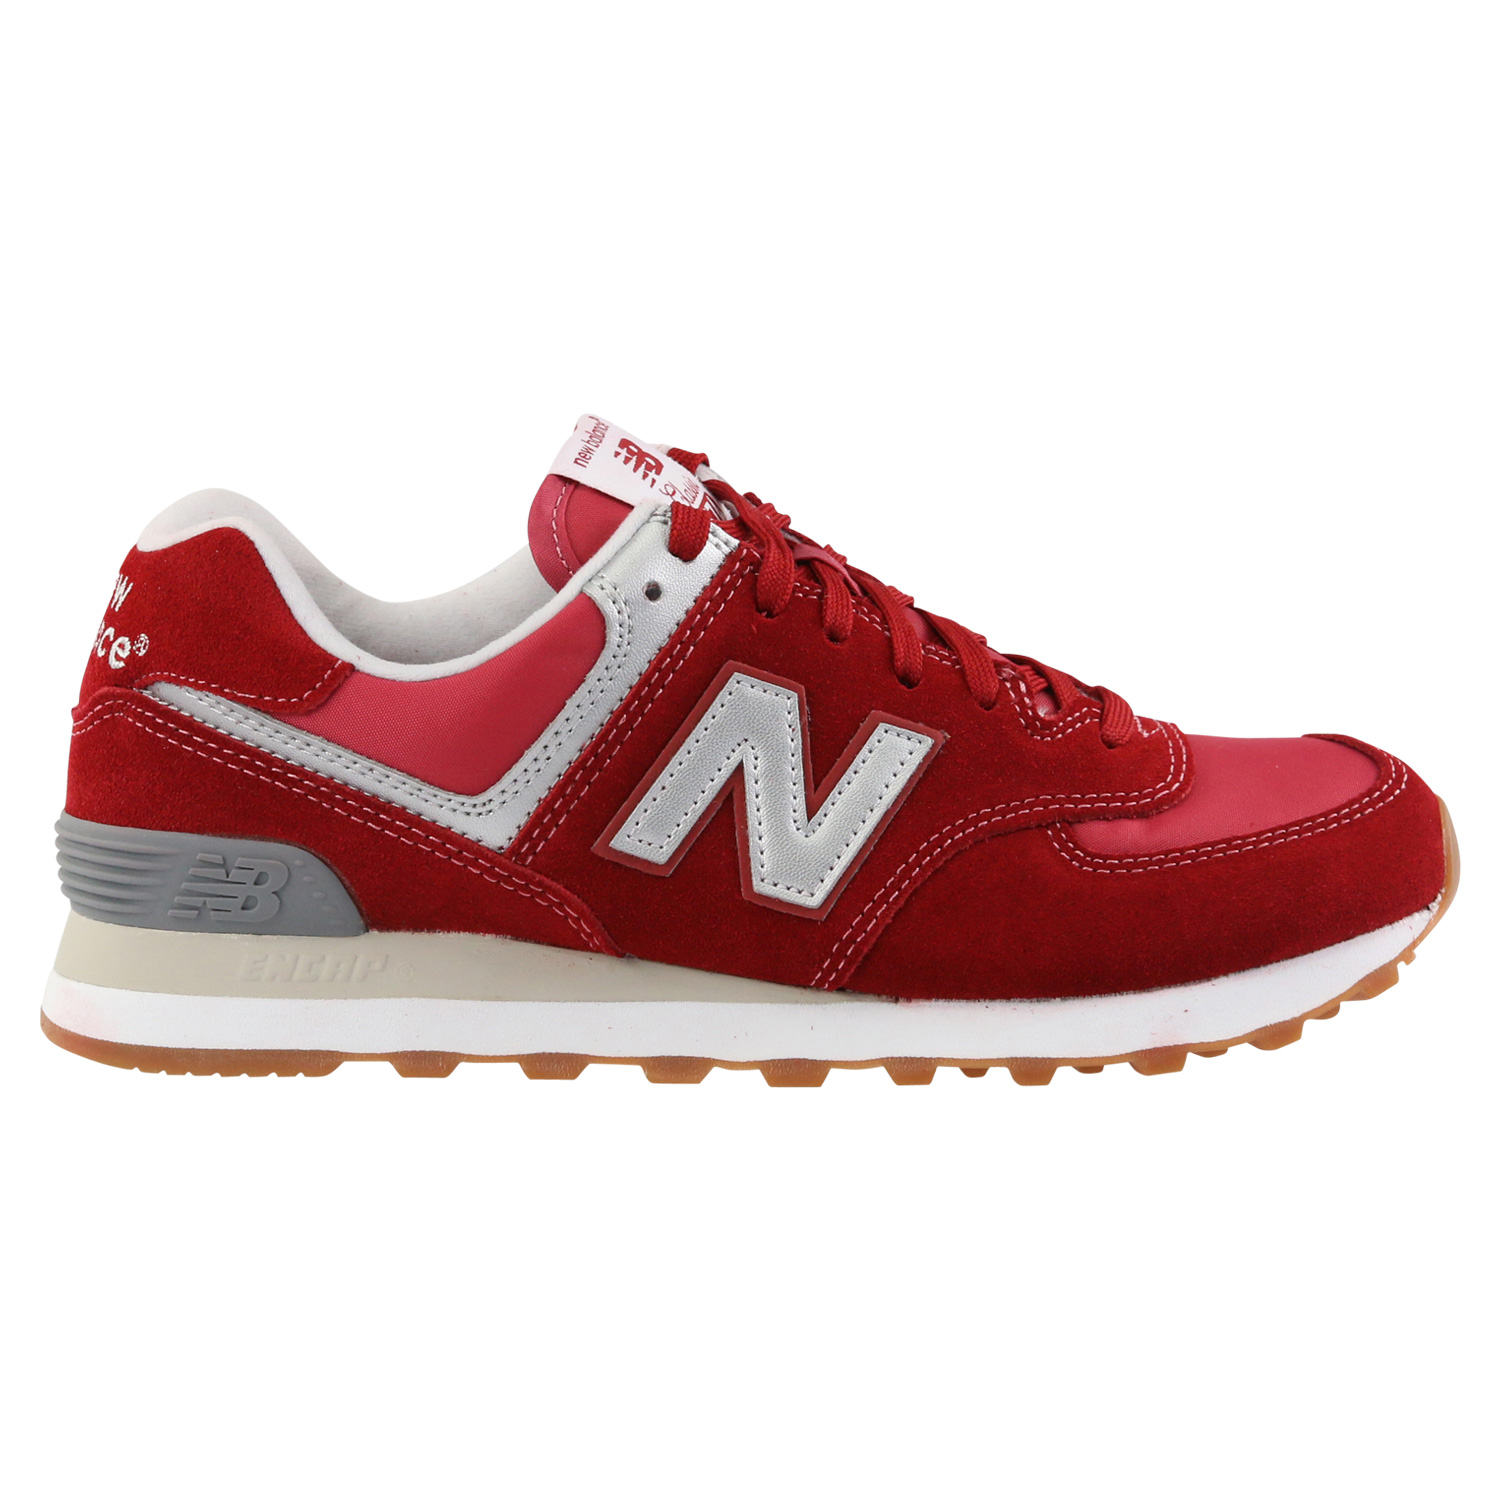 new balance 574 sneaker 28 images new balance 574 373 554 classics sneaker 2014 2015 scarpe. Black Bedroom Furniture Sets. Home Design Ideas